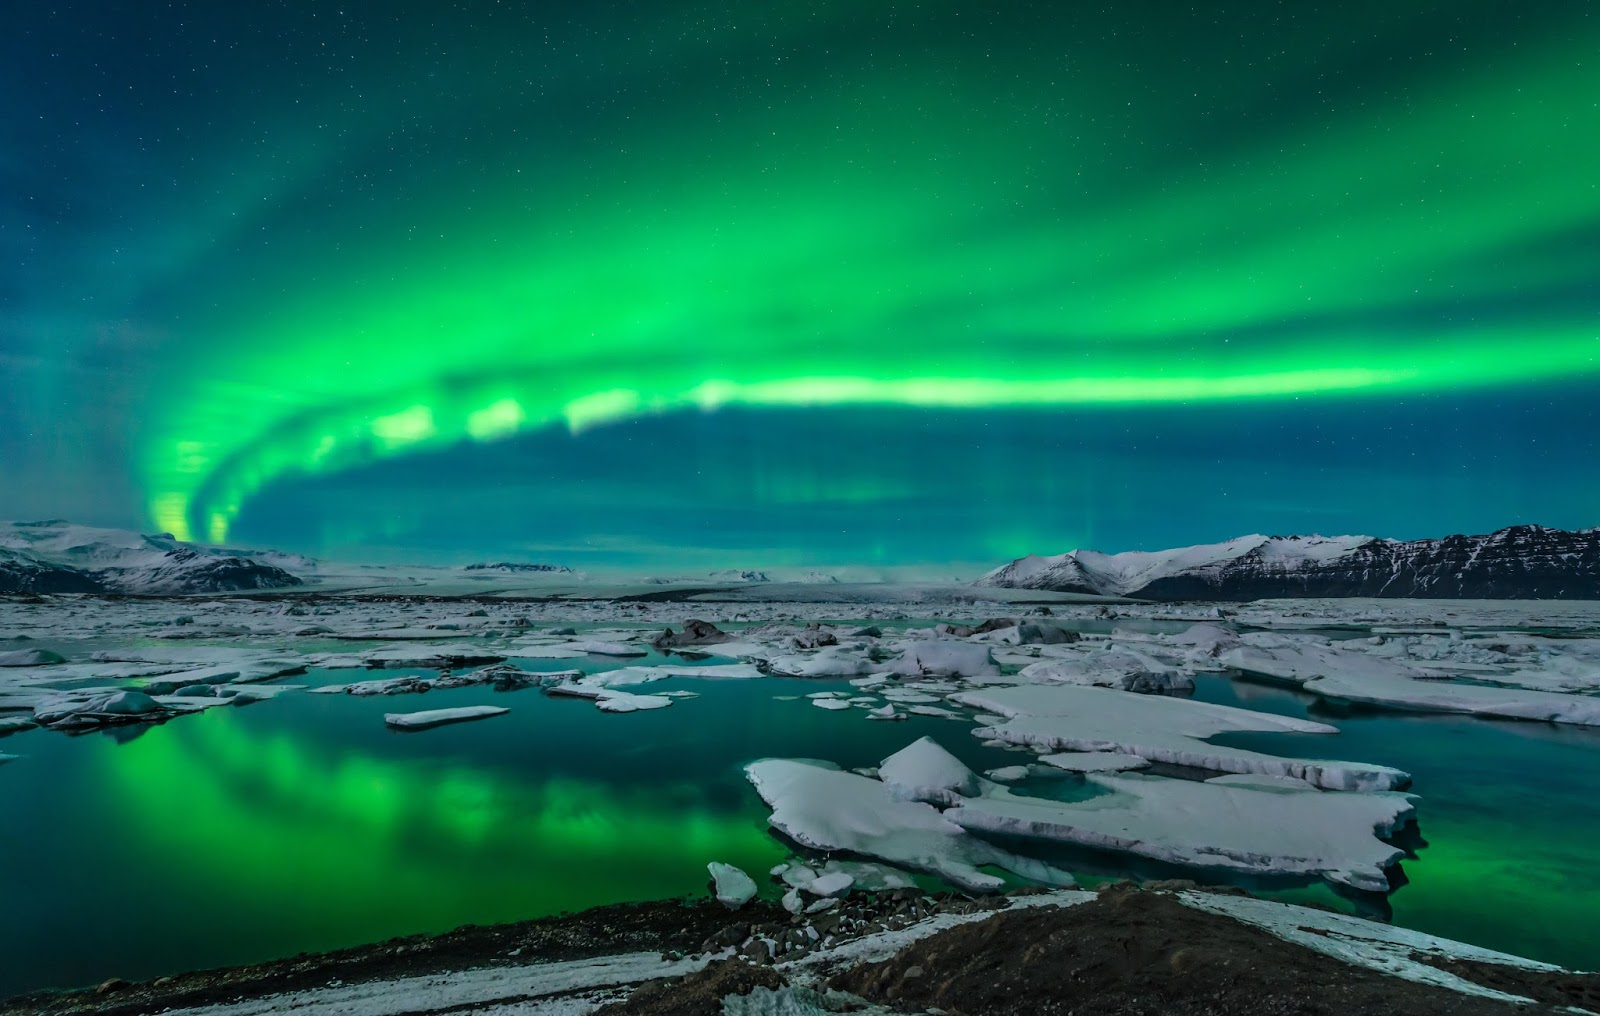 Contiki's brand new Icelandic itinerary spans four days, taking in Reykjavik, visiting hot springs and seeing the Northern Lights!